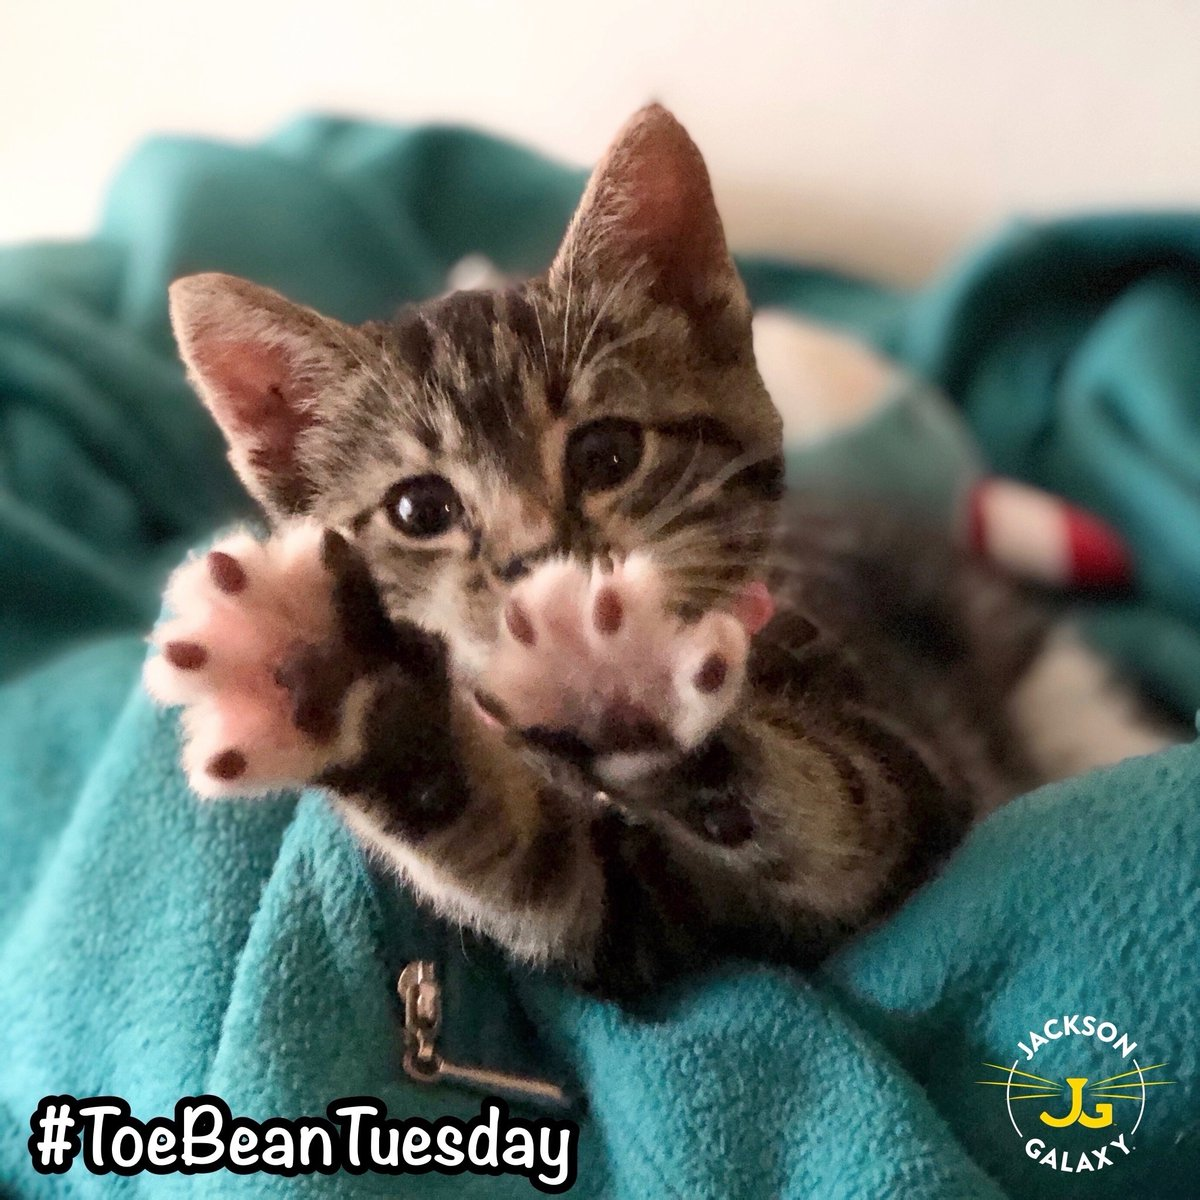 If you're happy and you know it, raise your beans!  ...Compliments of the adorable Pepita Tacocat the Tabby (@pepita_tacocat) and her human, #teamcatmojo's Lori Cooper (@loricooper8).    #ToeBeanTuesday  #TabbyTuesday  #CelebrateCats